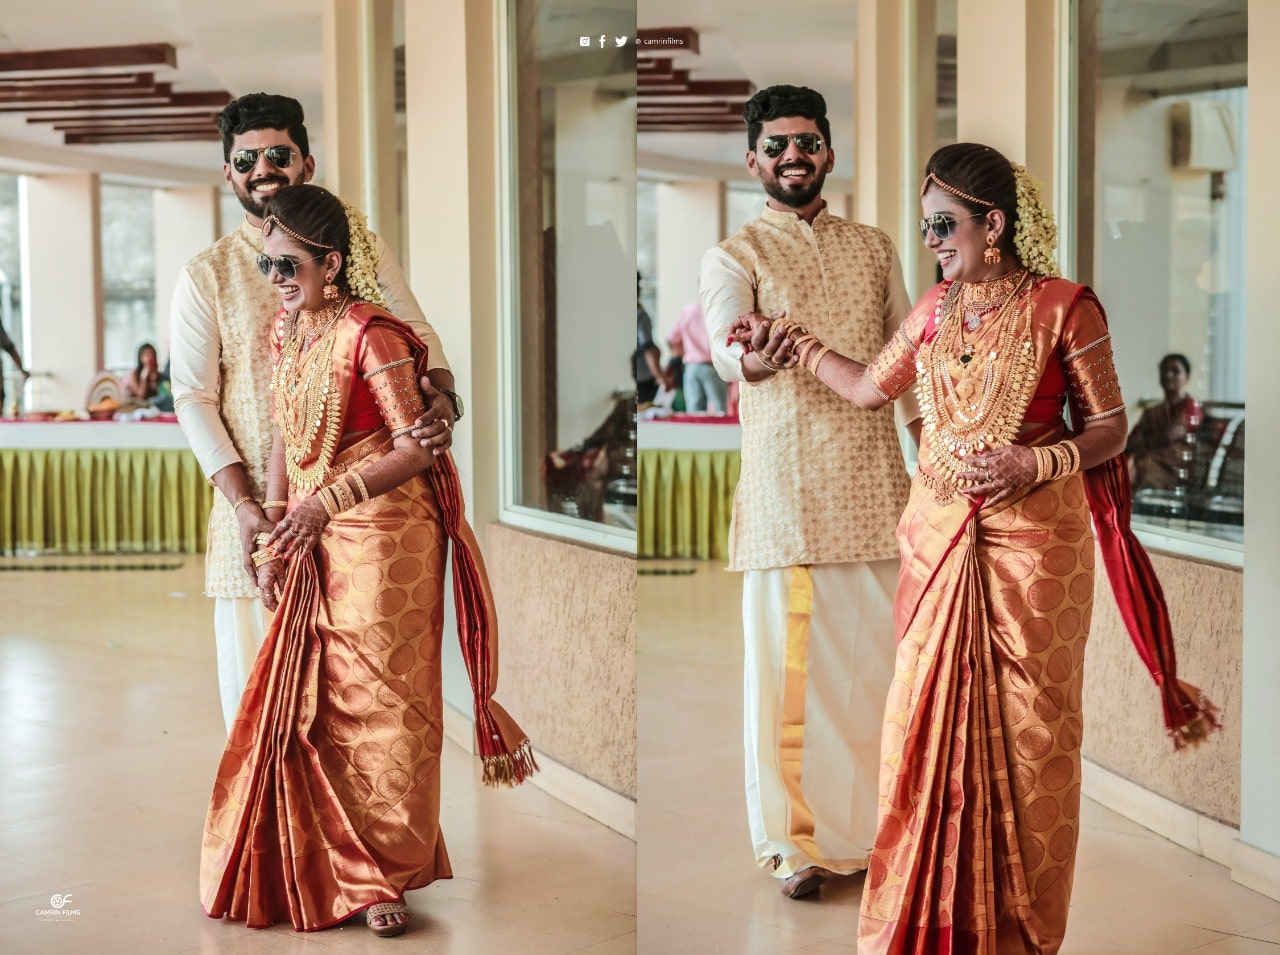 Hindu-wedding-photos-varun-and-sindhuja